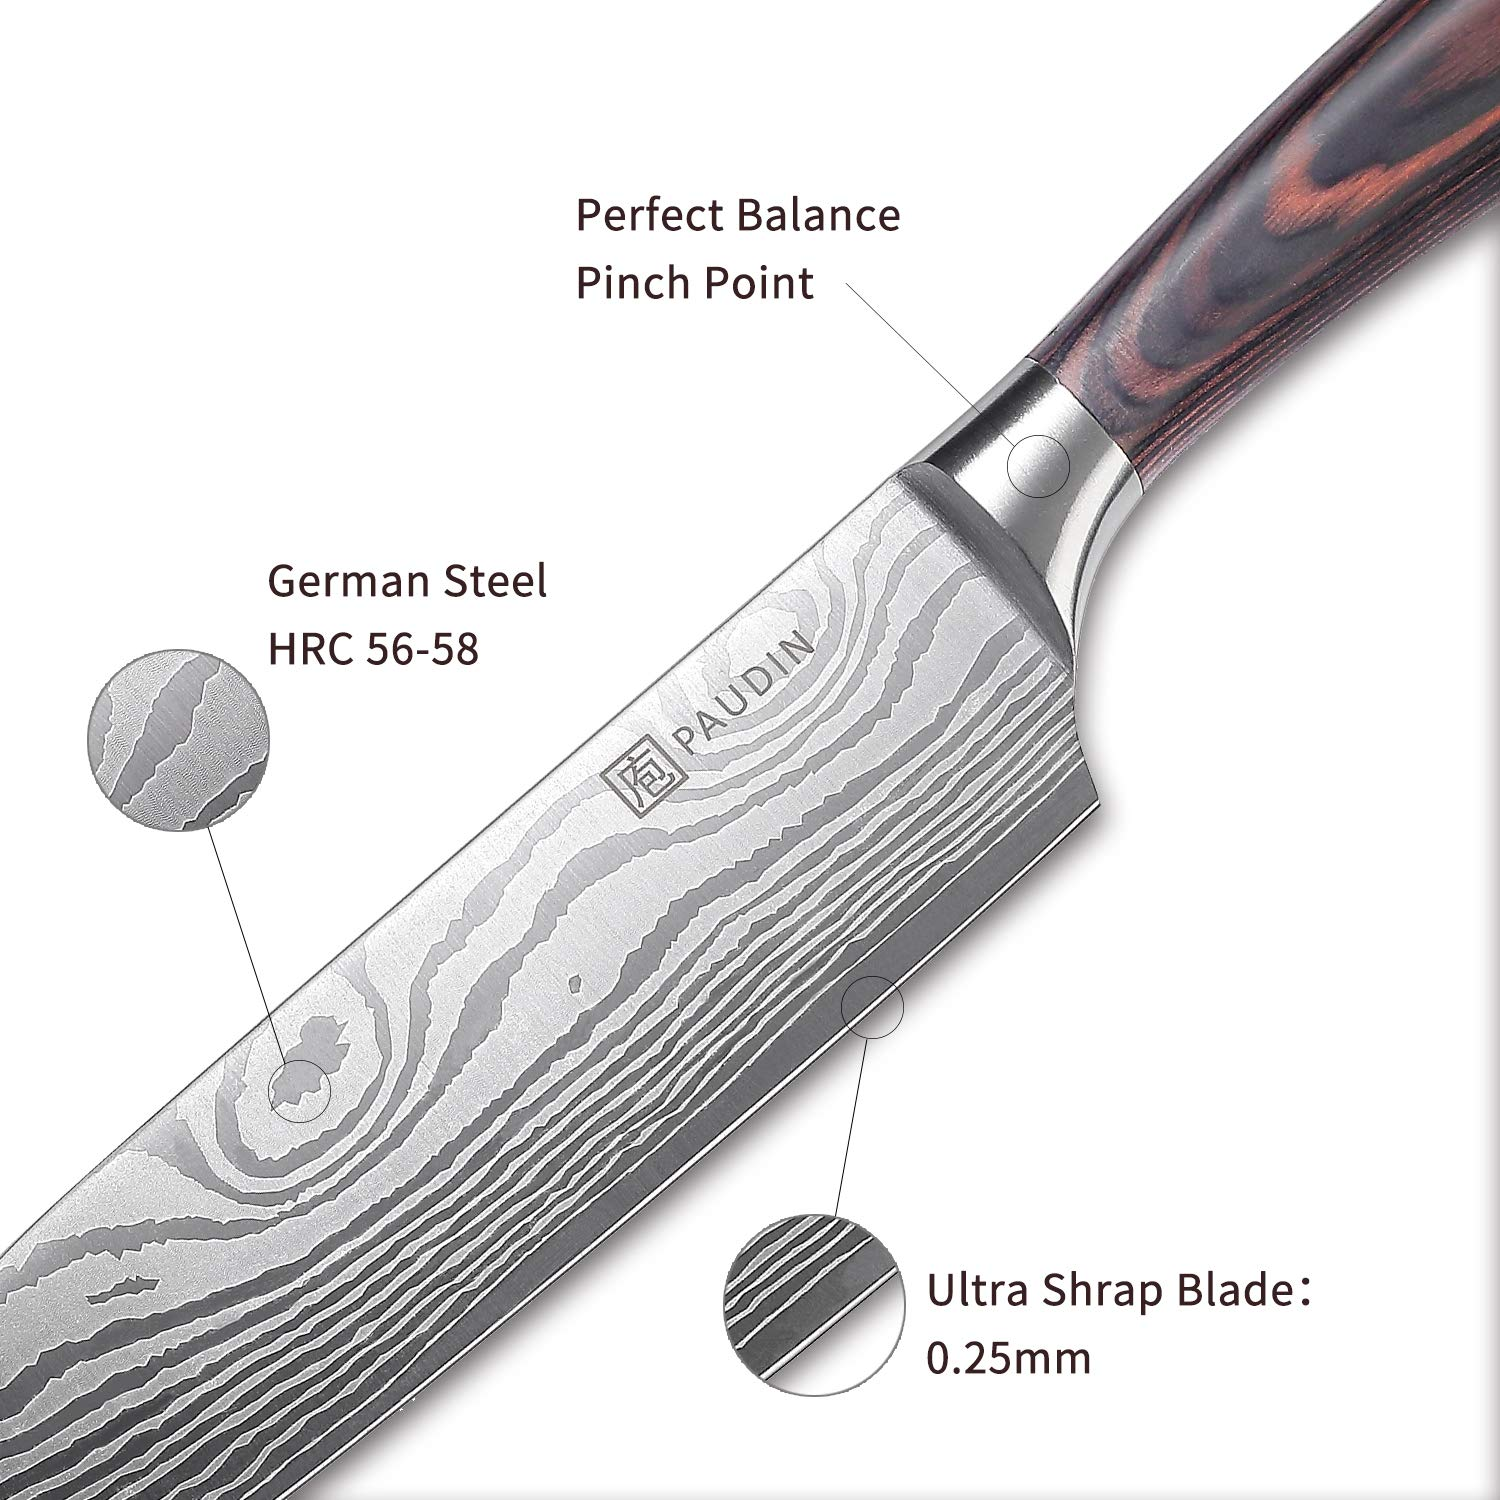 PAUDIN Classic 7 inch Hollow Ground Santoku Knife, German High Carbon Stainless Steel Kitchen Knife by PAUDIN (Image #4)